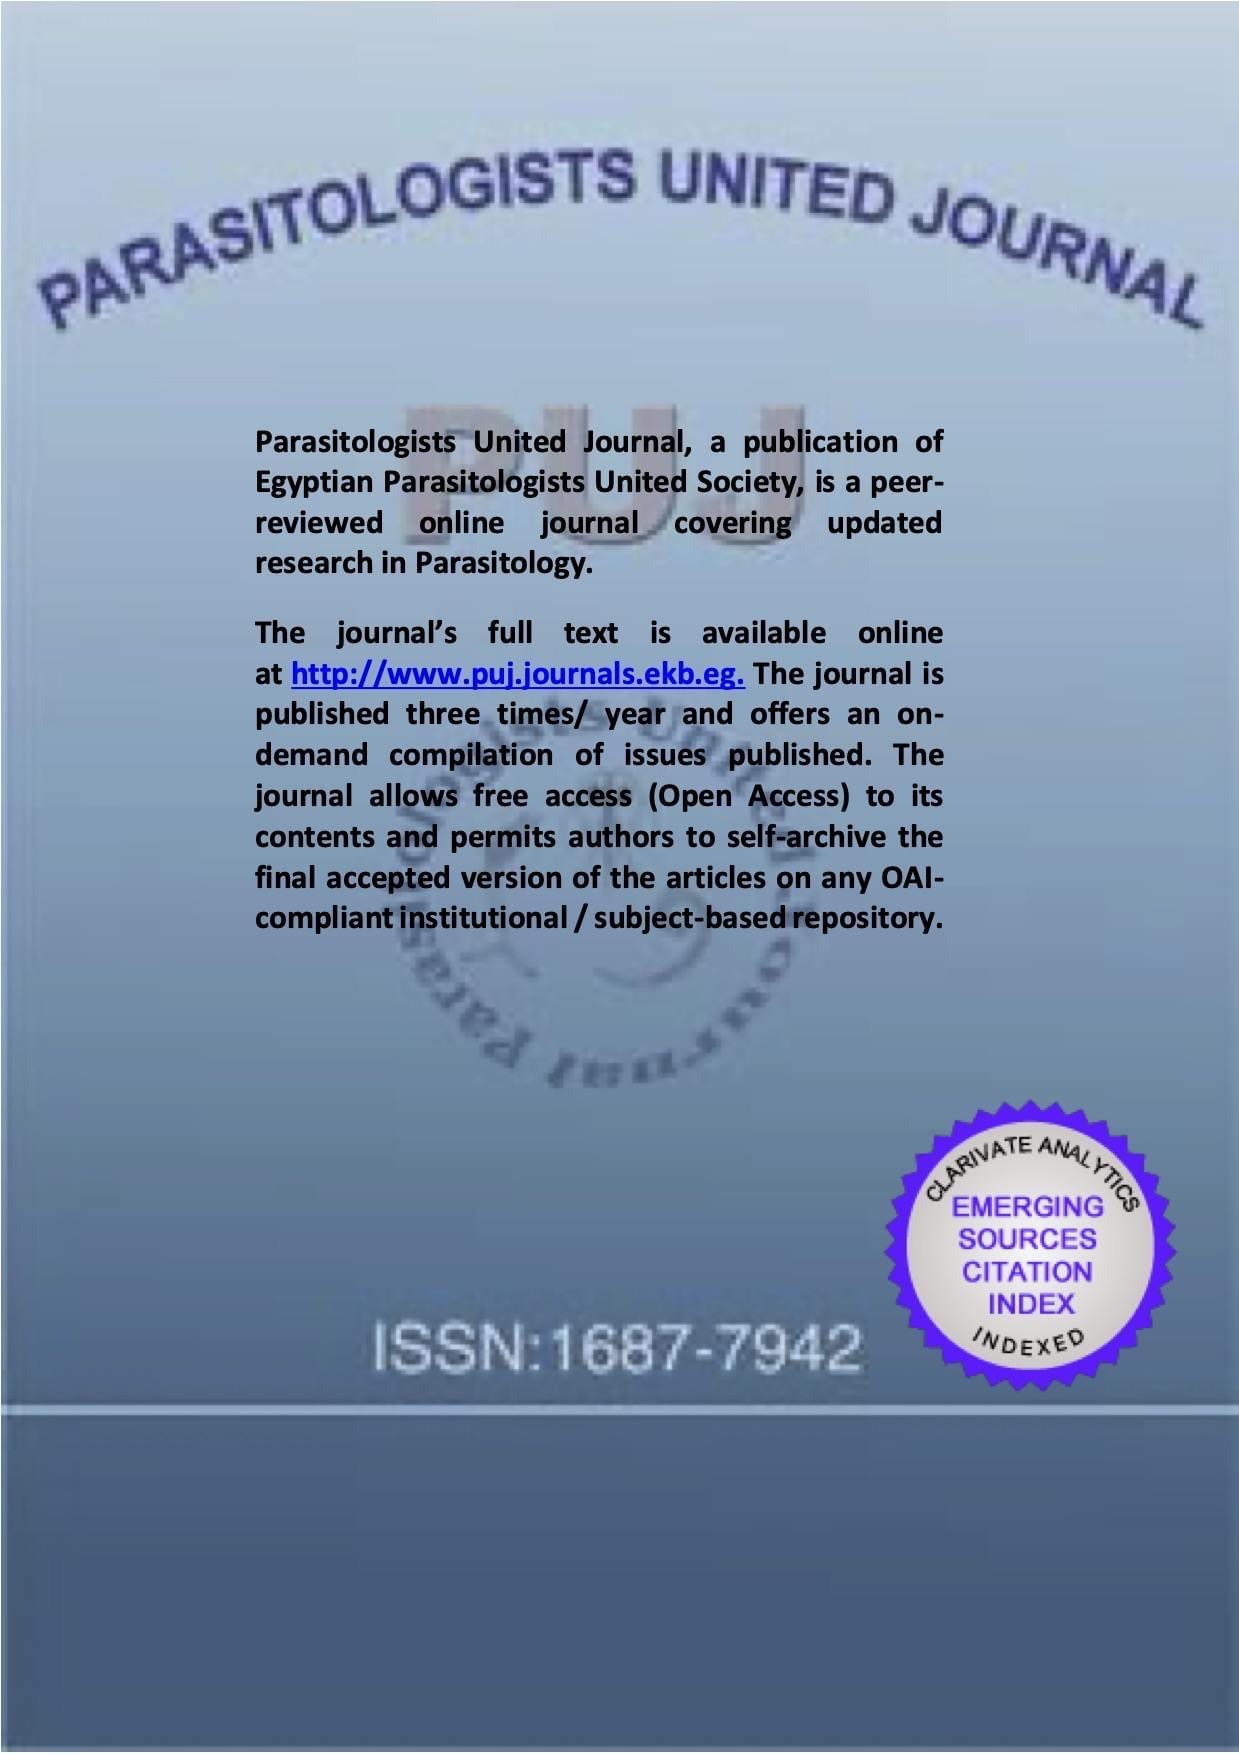 Parasitologists United Journal